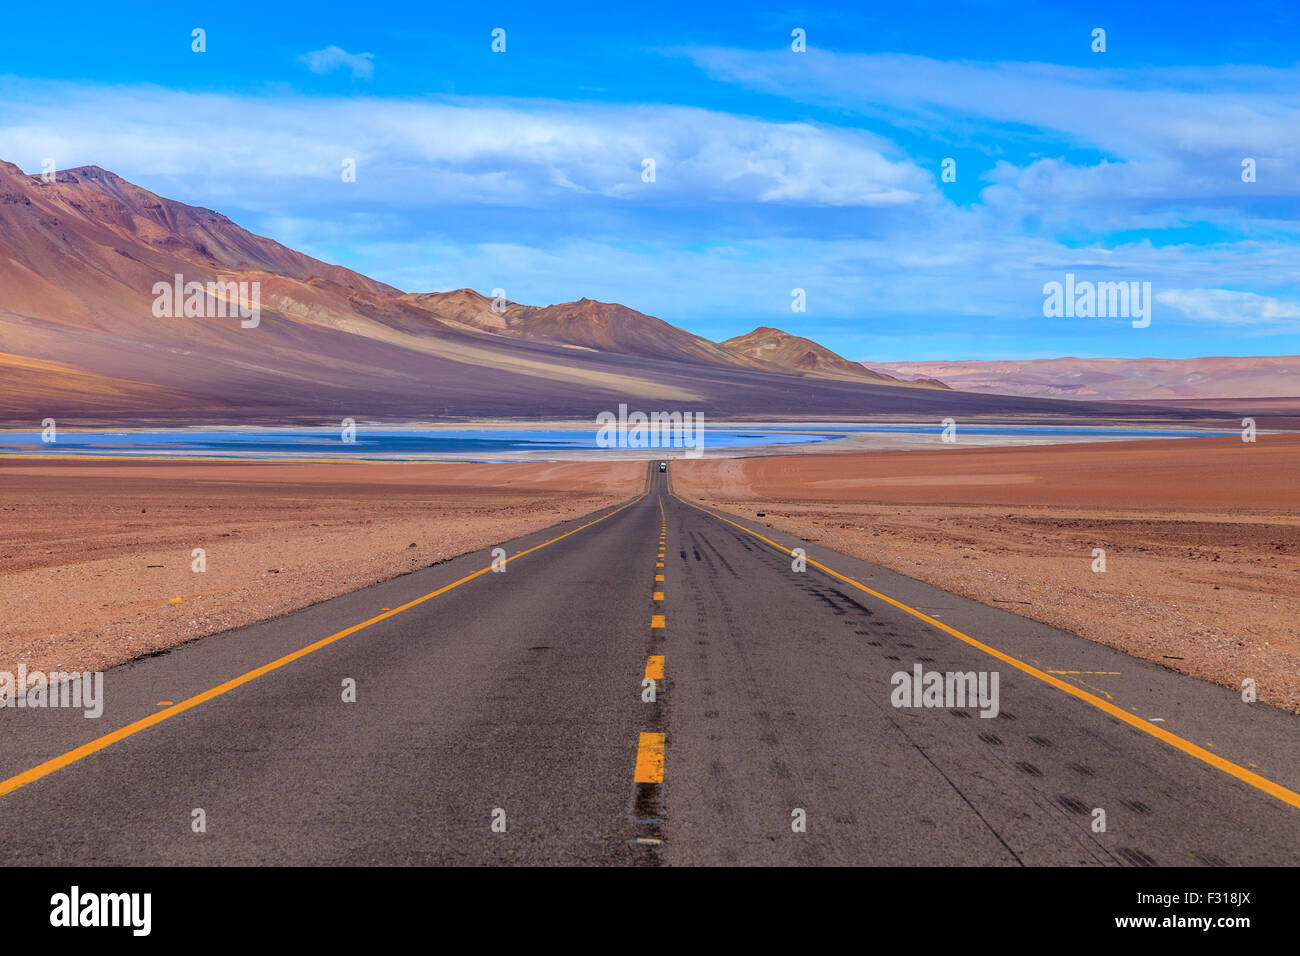 The lonely road that leads to the Salar de tara - Stock Image